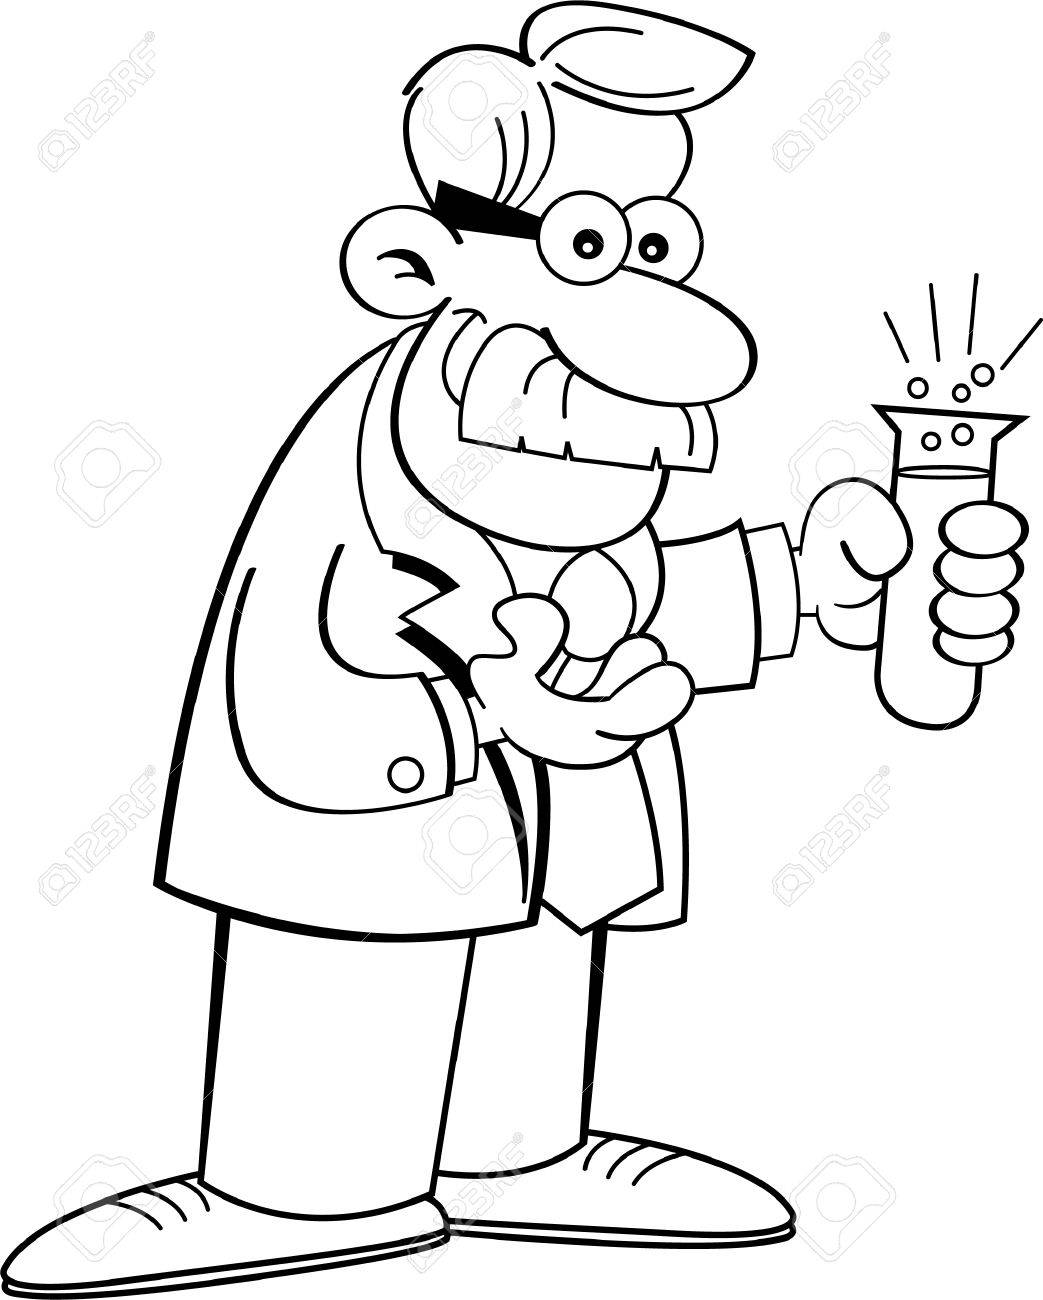 black and white illustration of a scientist holding a test tube royalty free cliparts vectors and stock illustration image 22873215 black and white illustration of a scientist holding a test tube